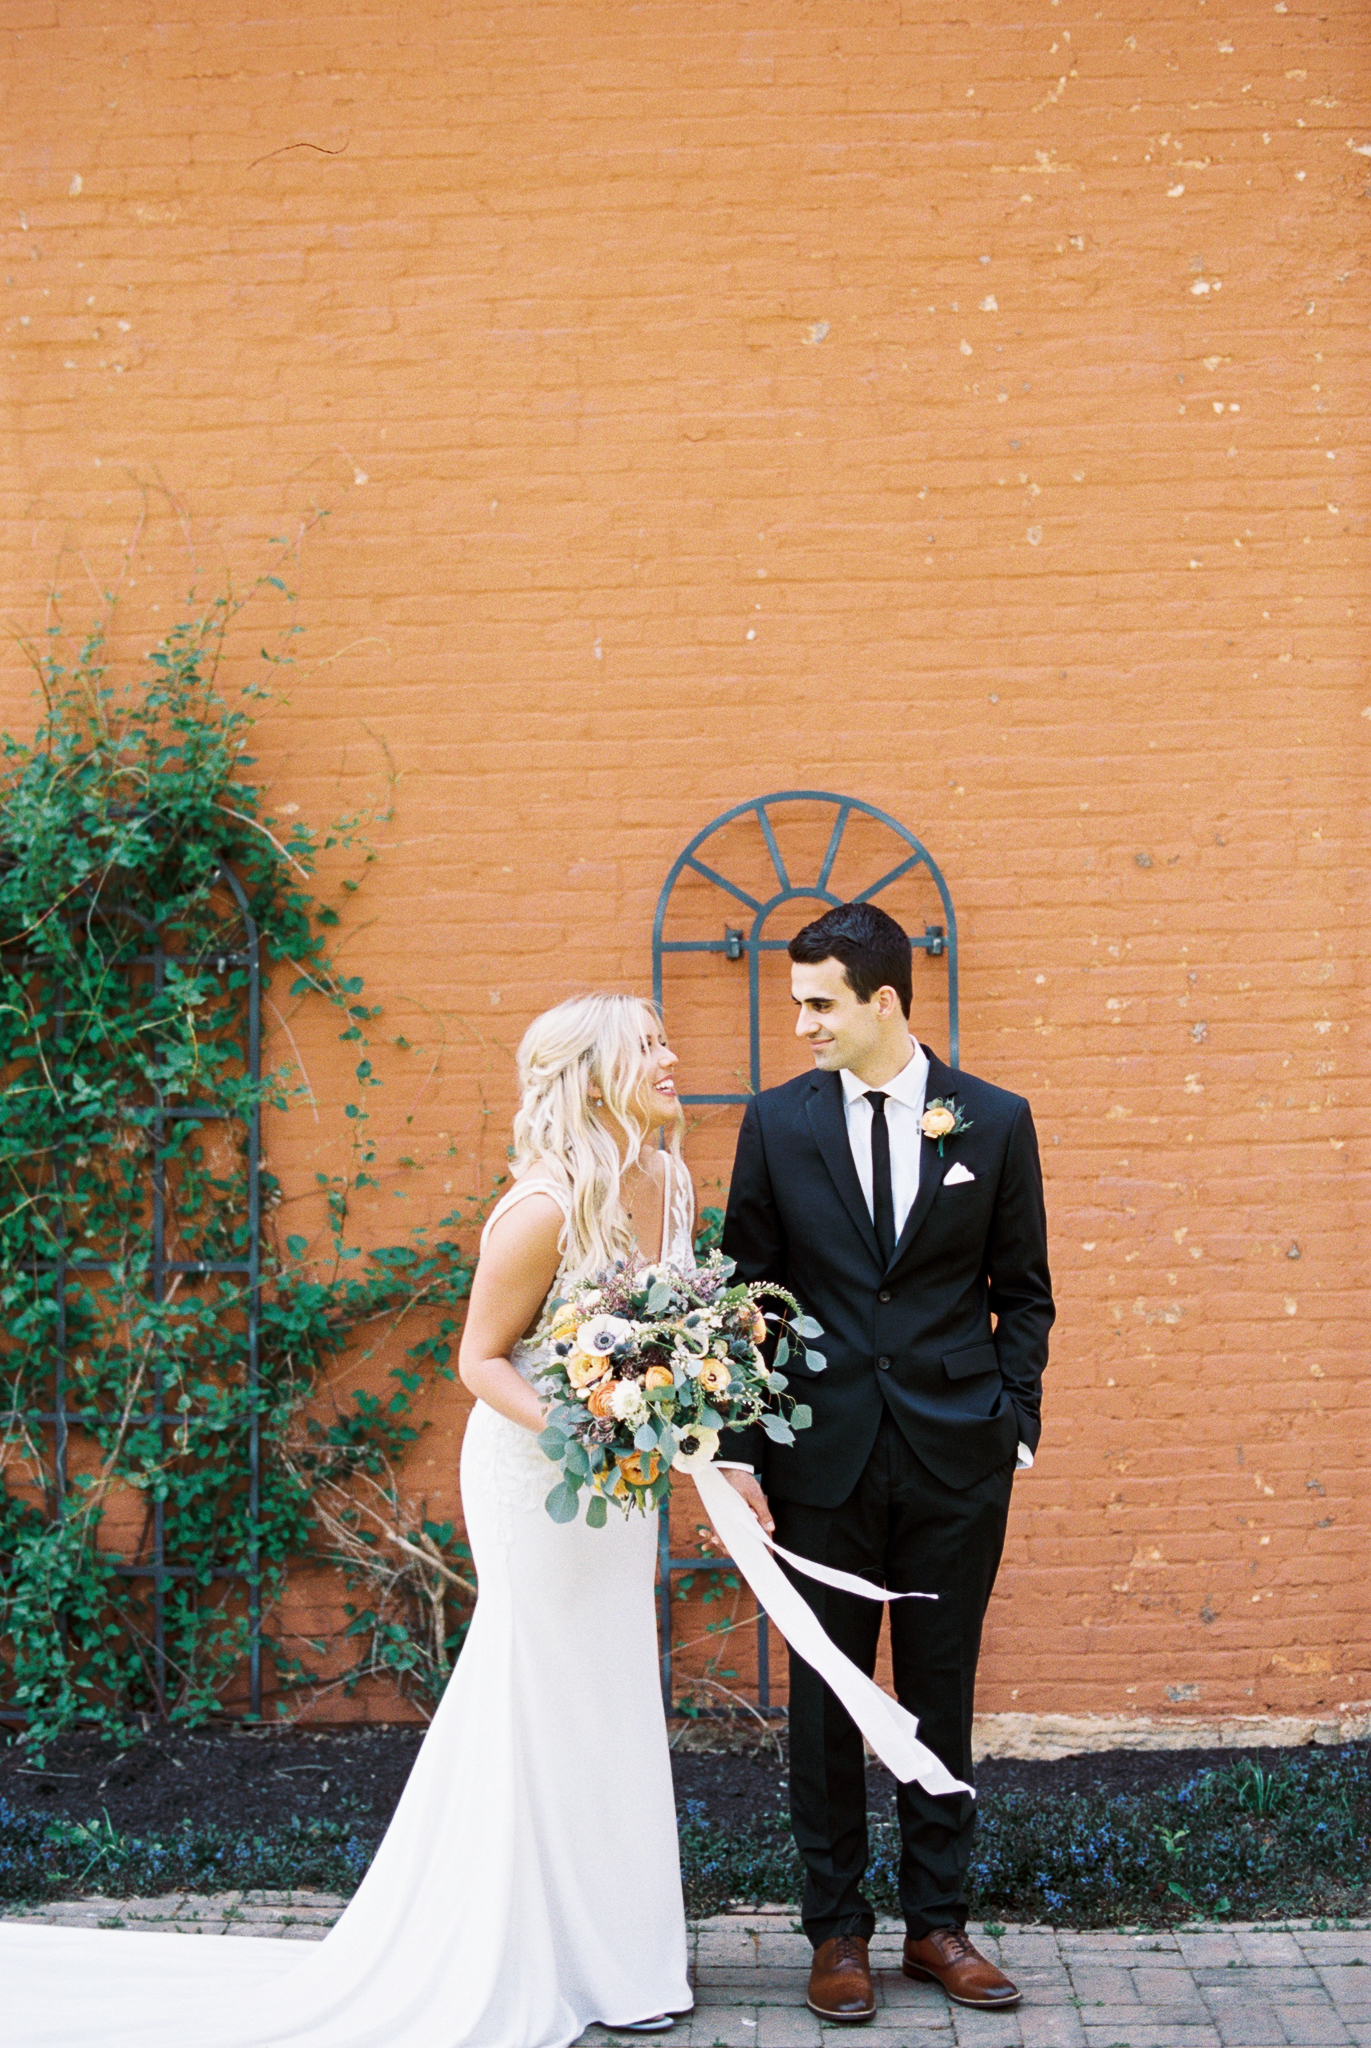 Dayton_CIncinnati_Film_Wedding_Portrait_Photographer-25.jpg